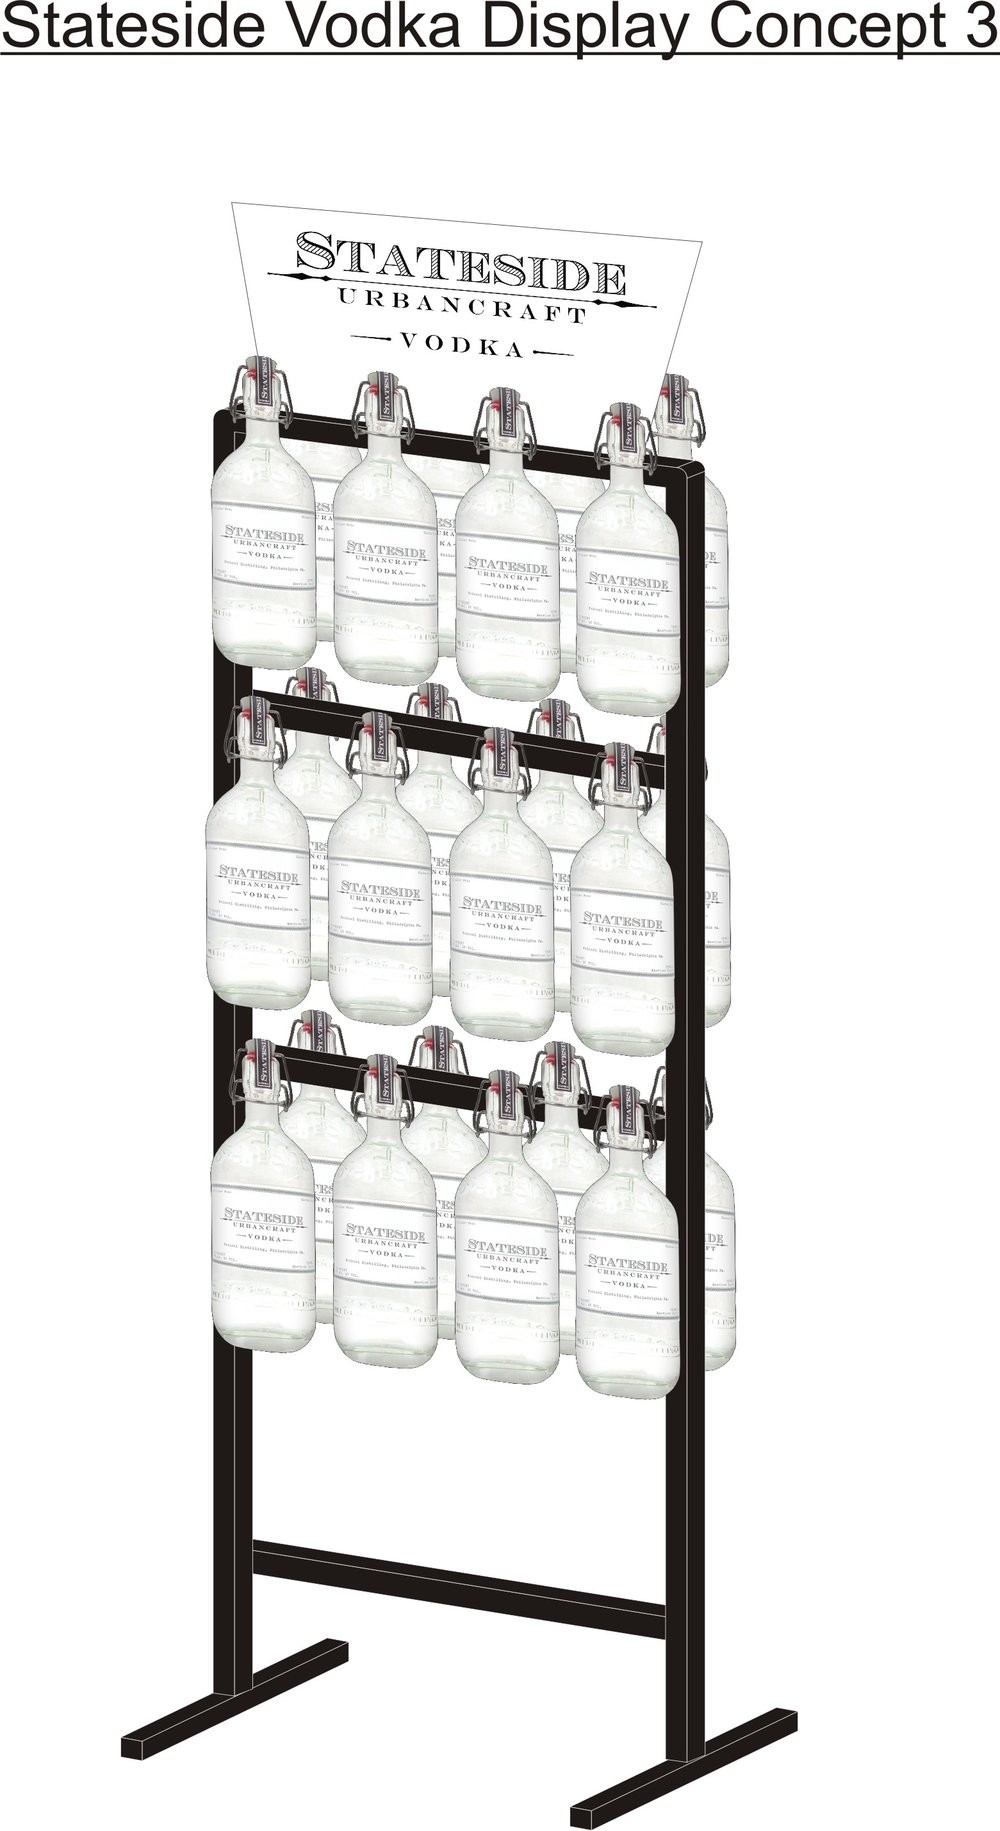 Stateside Vodka Display Concept 3.jpg